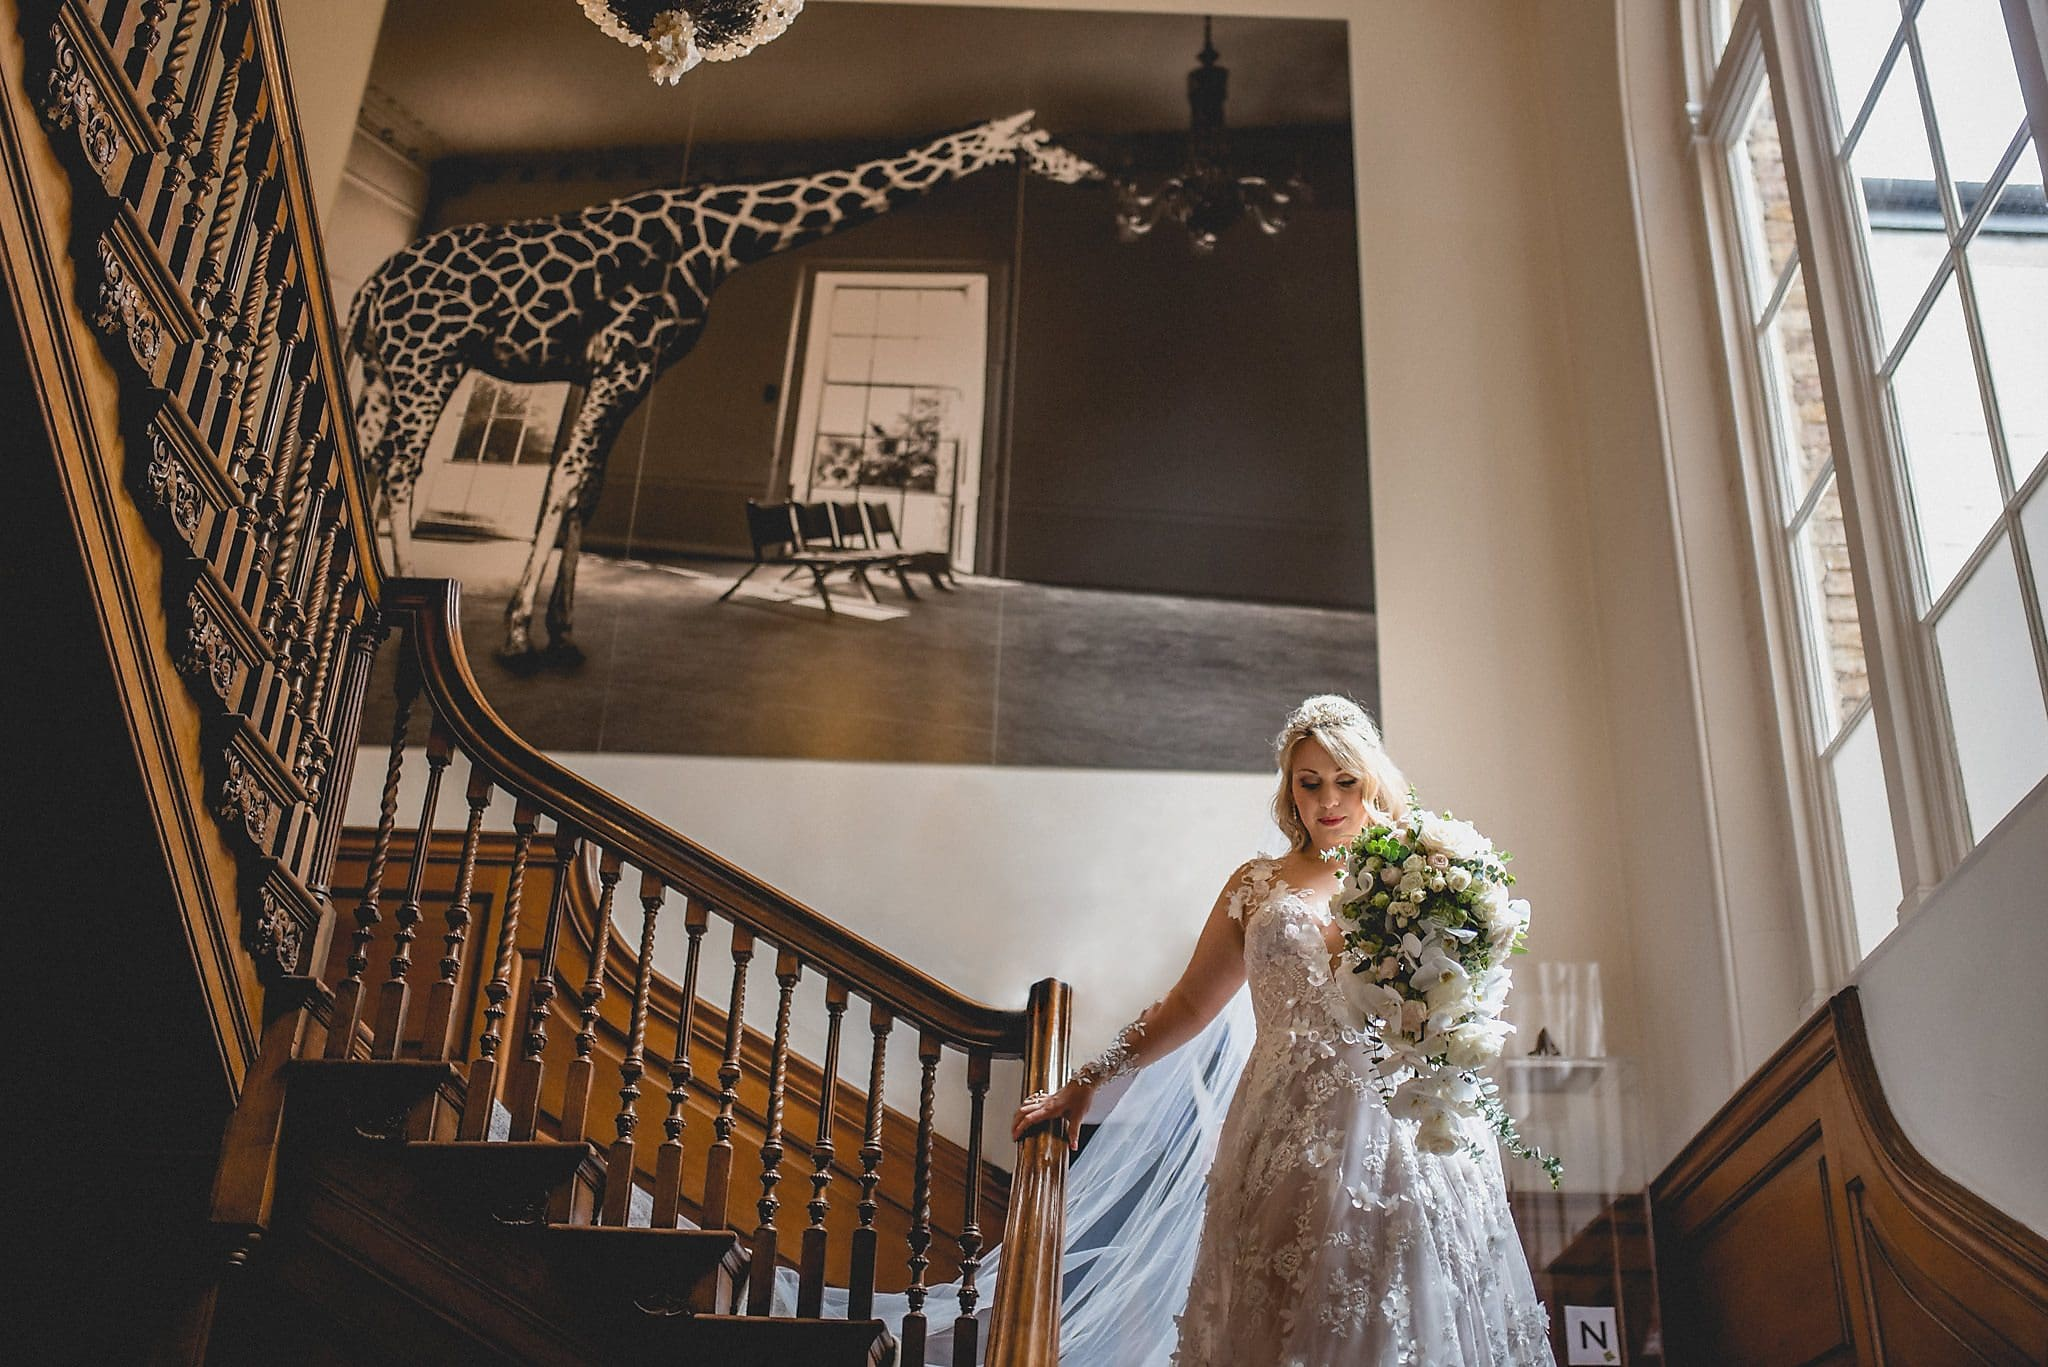 Bride walking down the staircase at her Artistic Wedding at The Grove